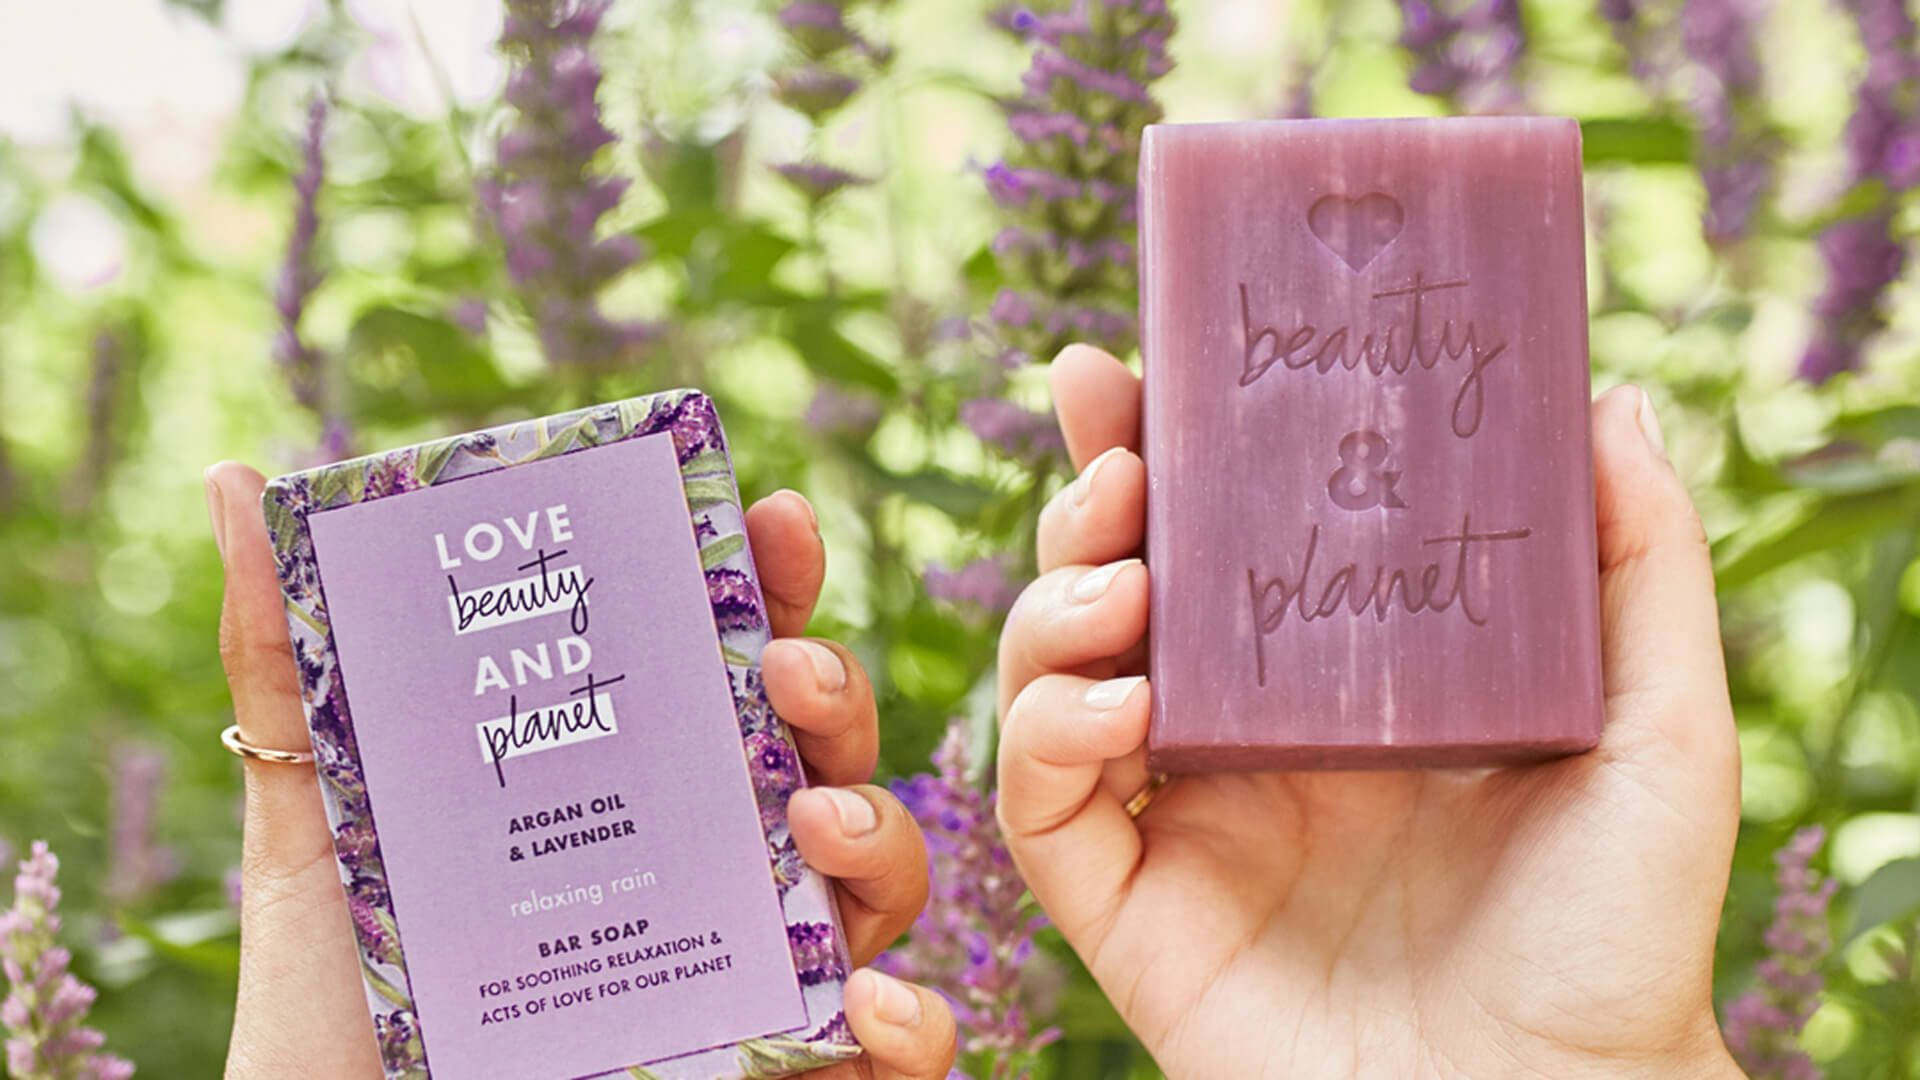 Love, beauty and planet product